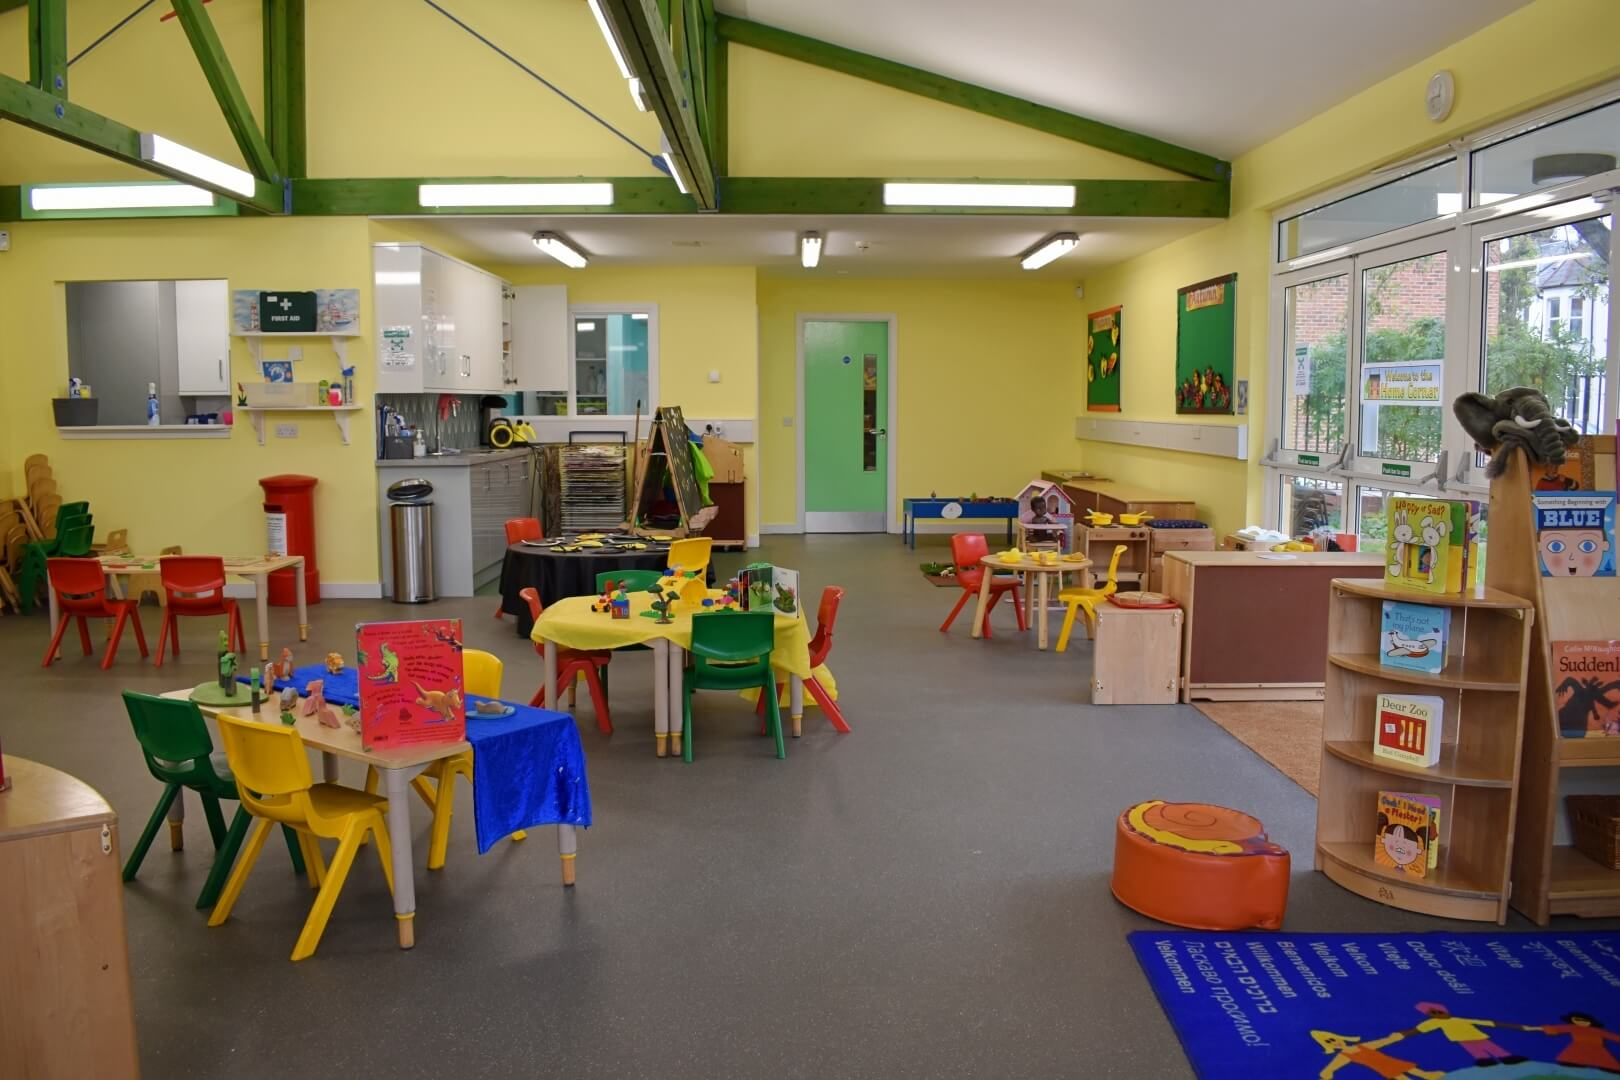 Rays Playhouse Childrens Centre Sands End Fulham (22)